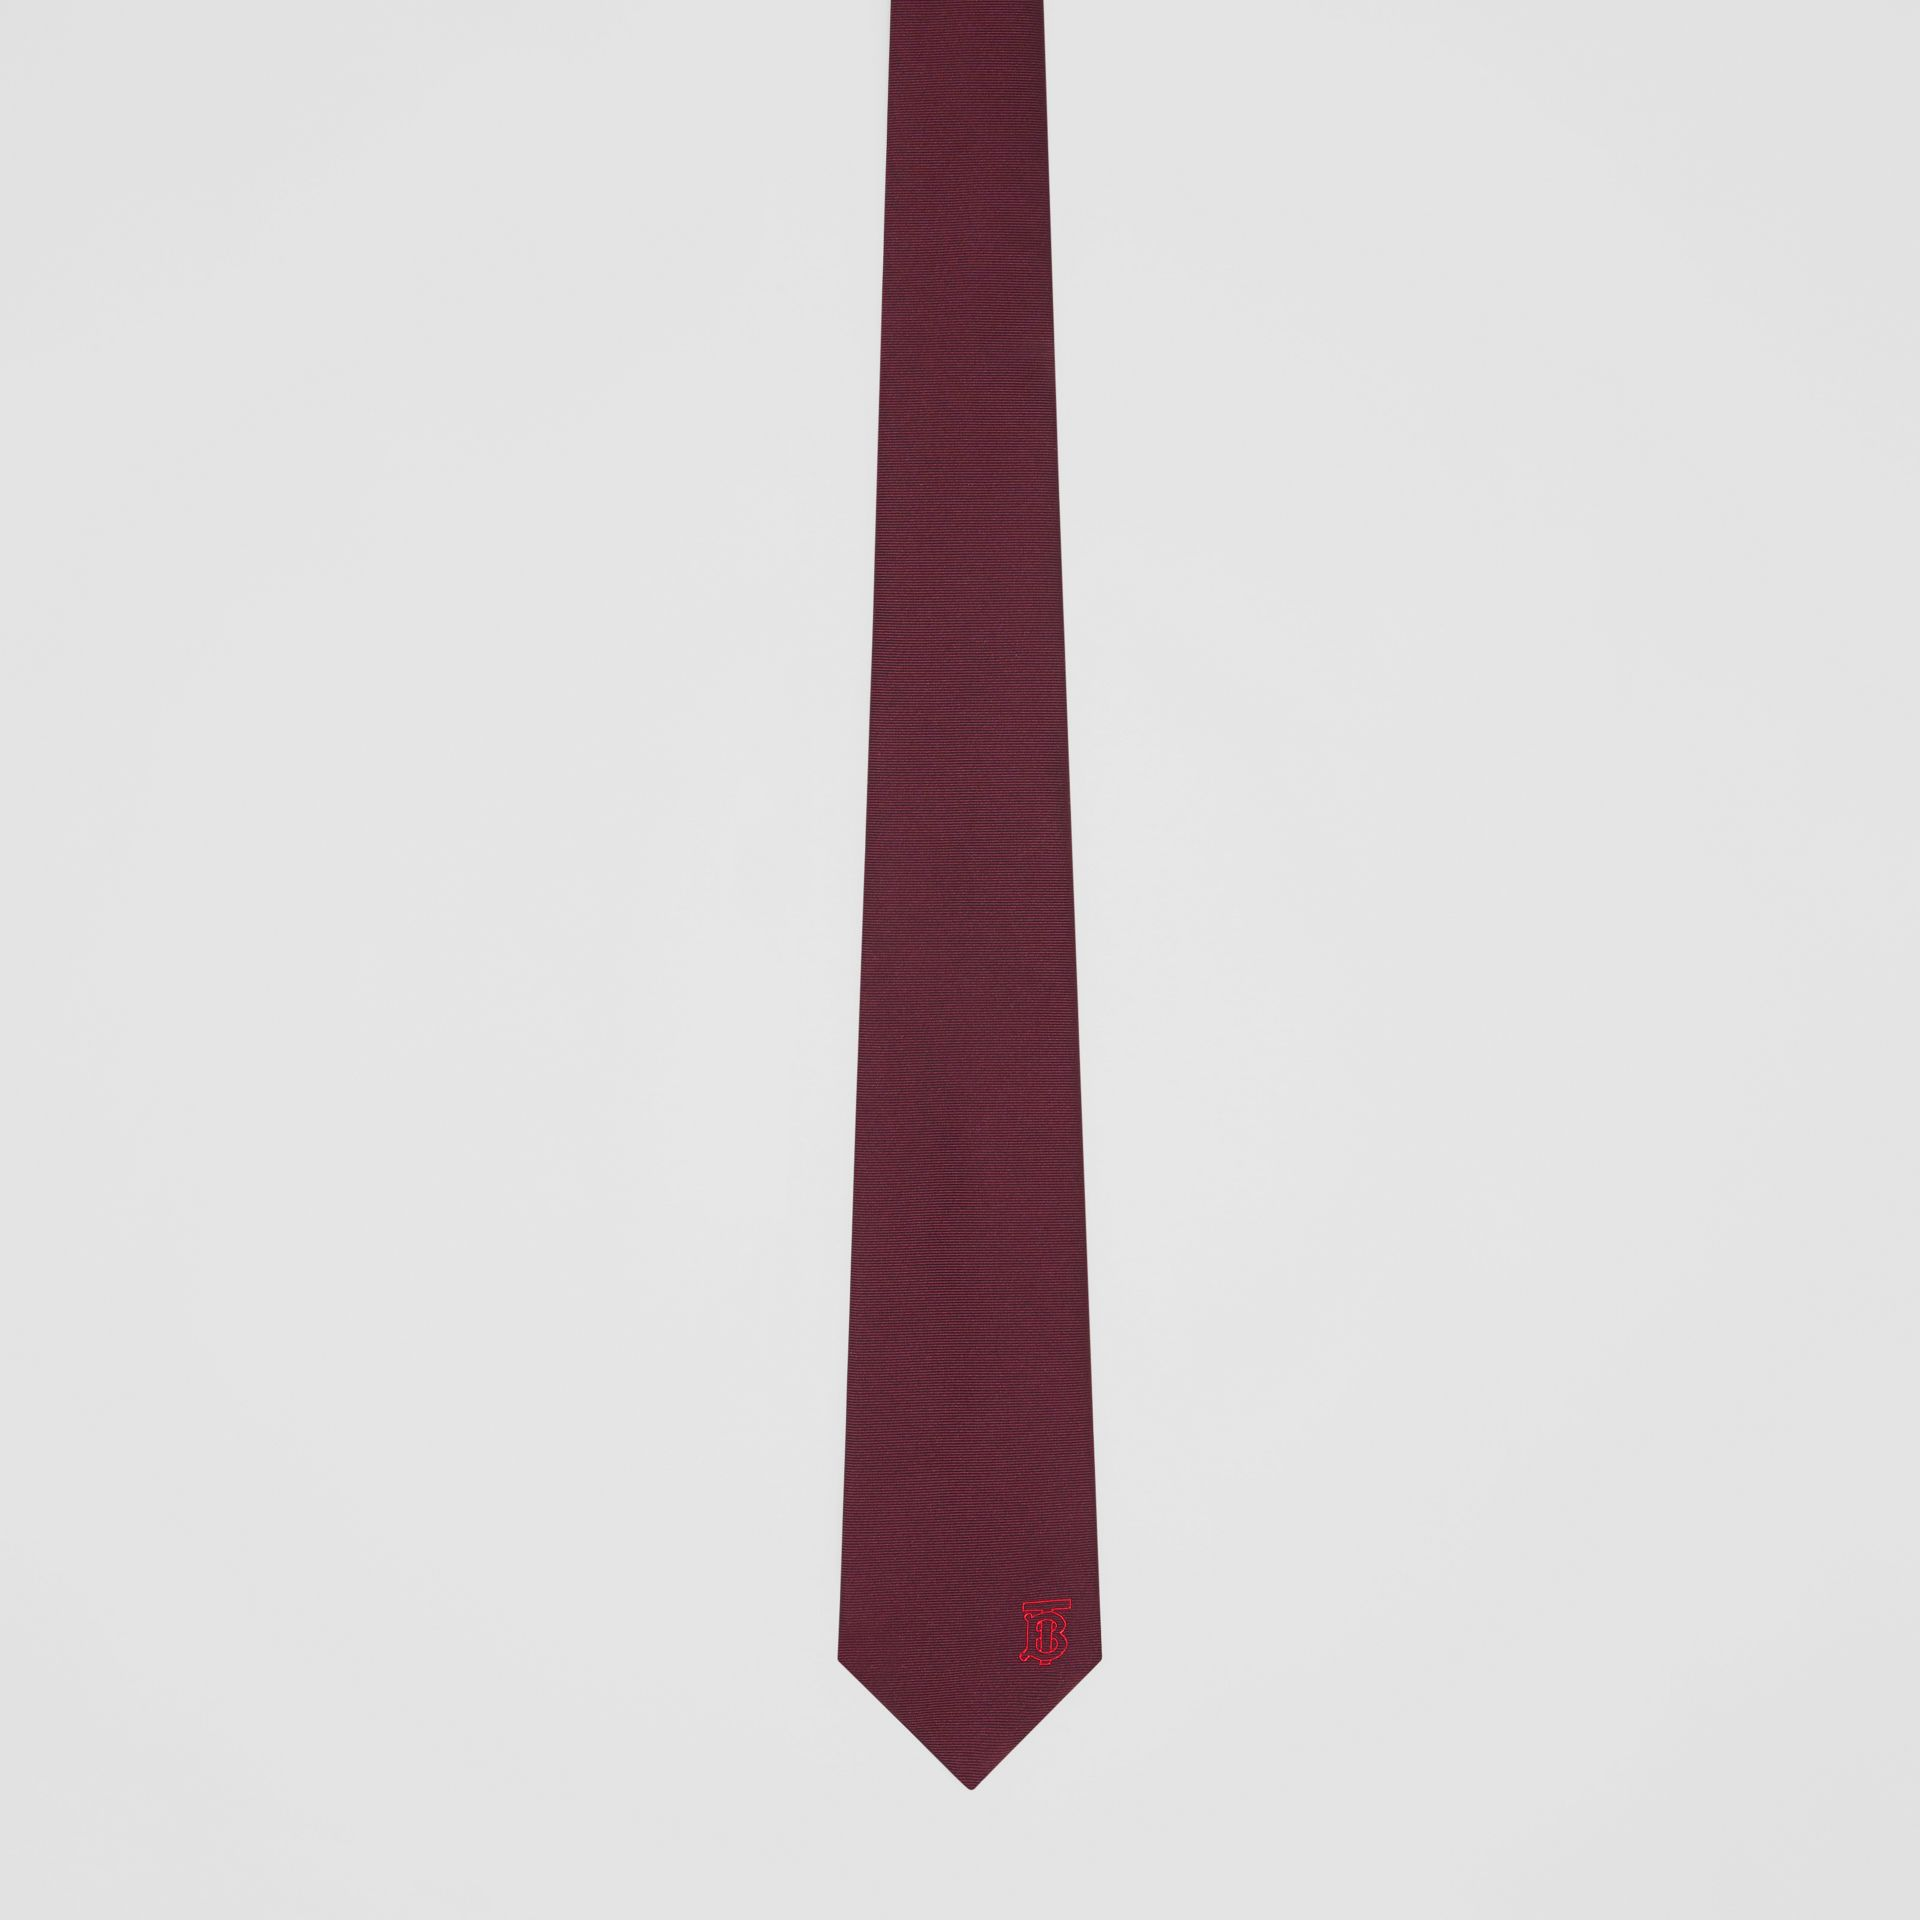 Classic Cut Monogram Motif Silk Tie in Deep Claret - Men | Burberry United States - gallery image 3